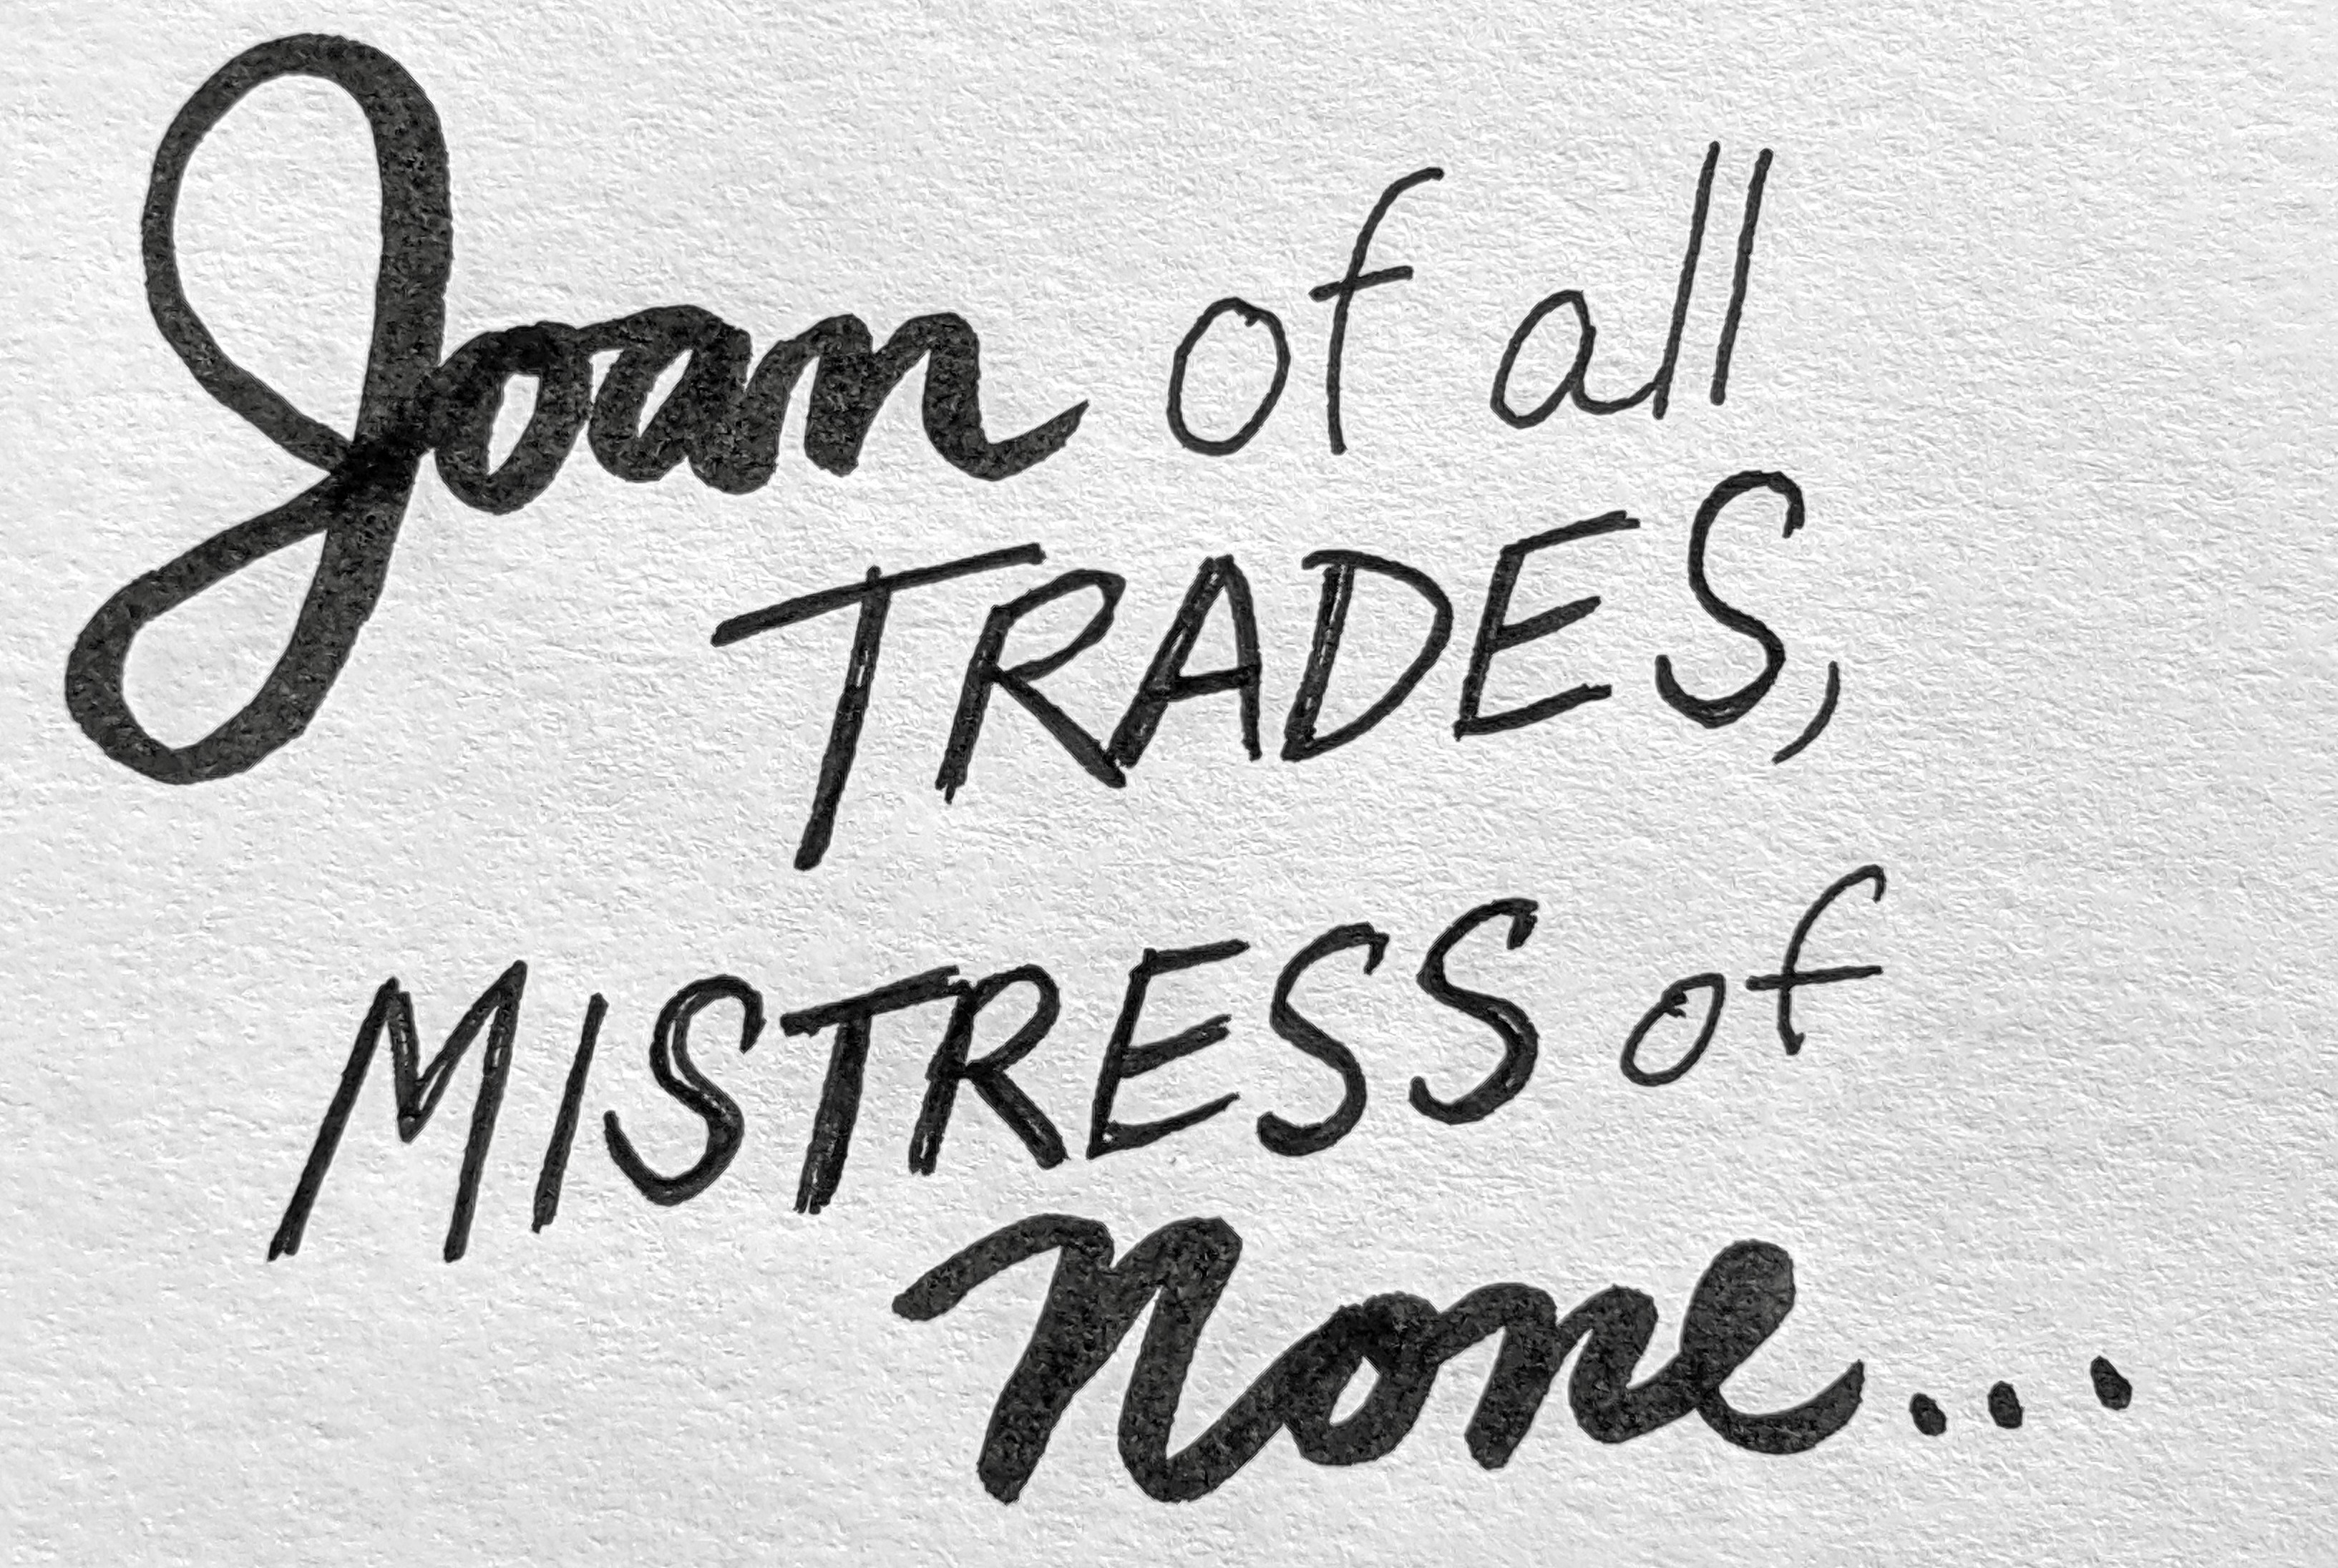 Joan of all Trades, Mistress of none.